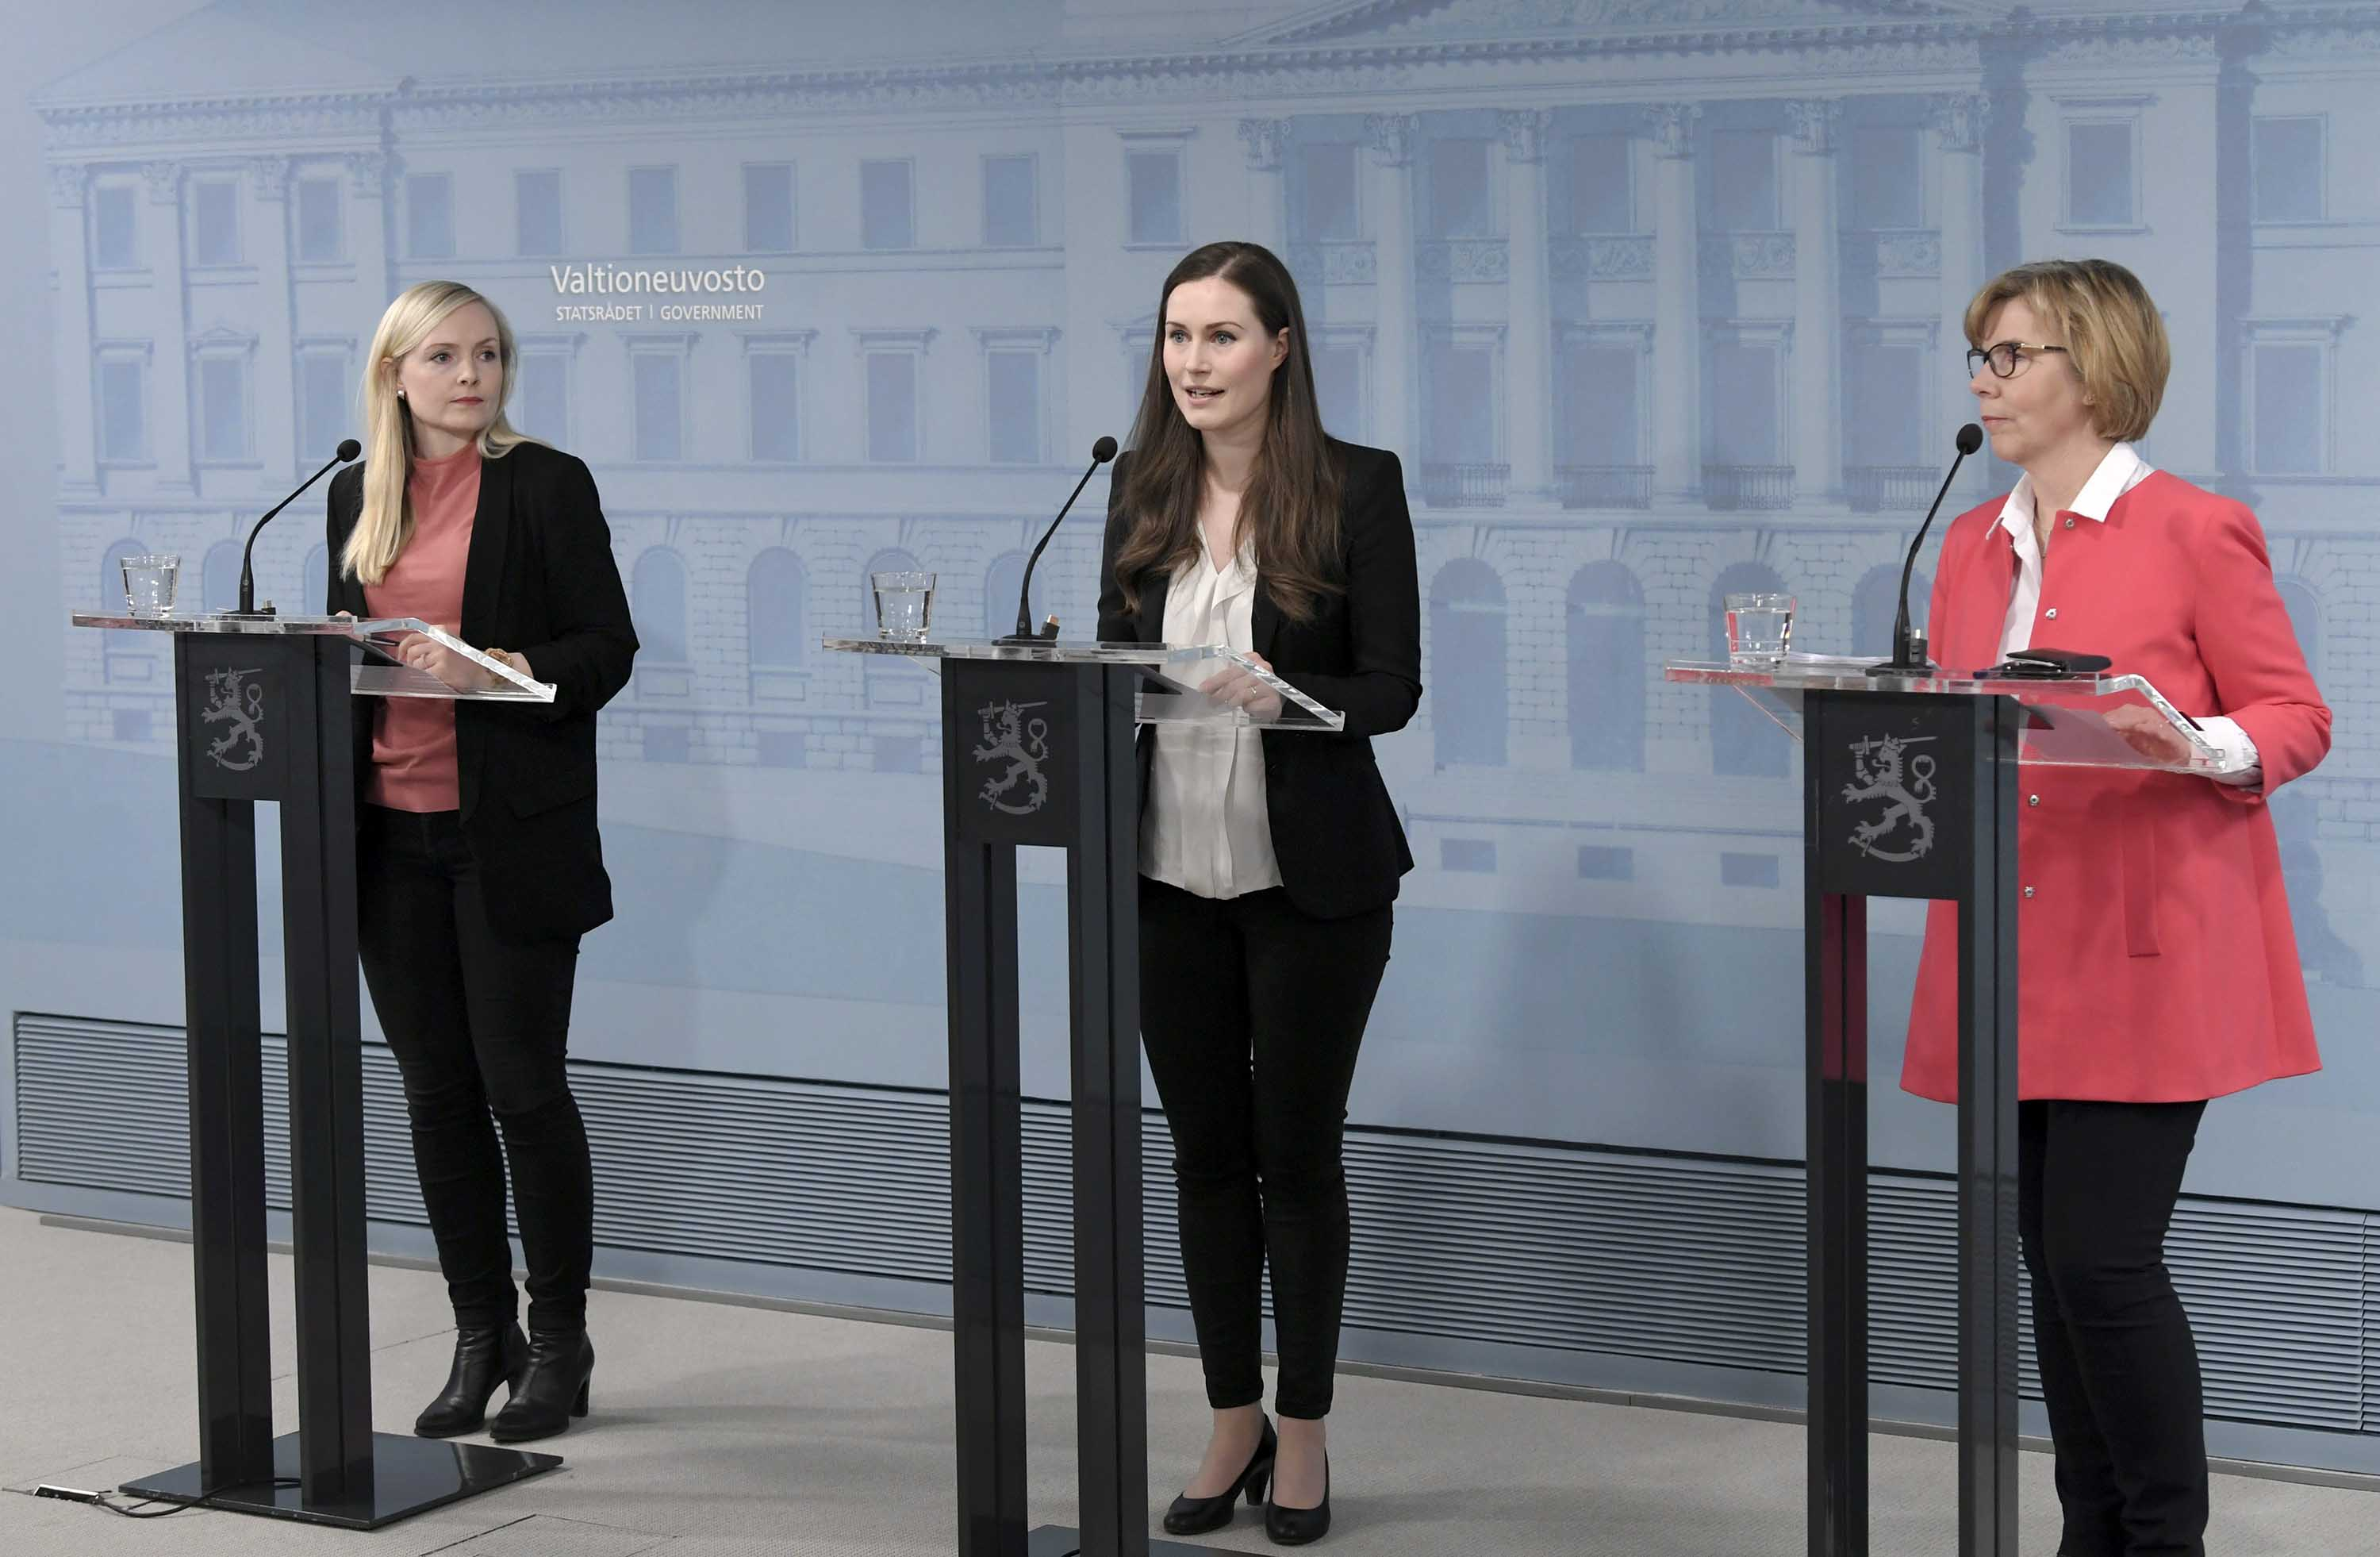 From left: Finnish Interior Minister Maria Ohisalo, Prime Minister Sanna Marin and Justice Minister Anna-Maja Henriksson attend a press conference in Helsinki, Finland, on April 15.